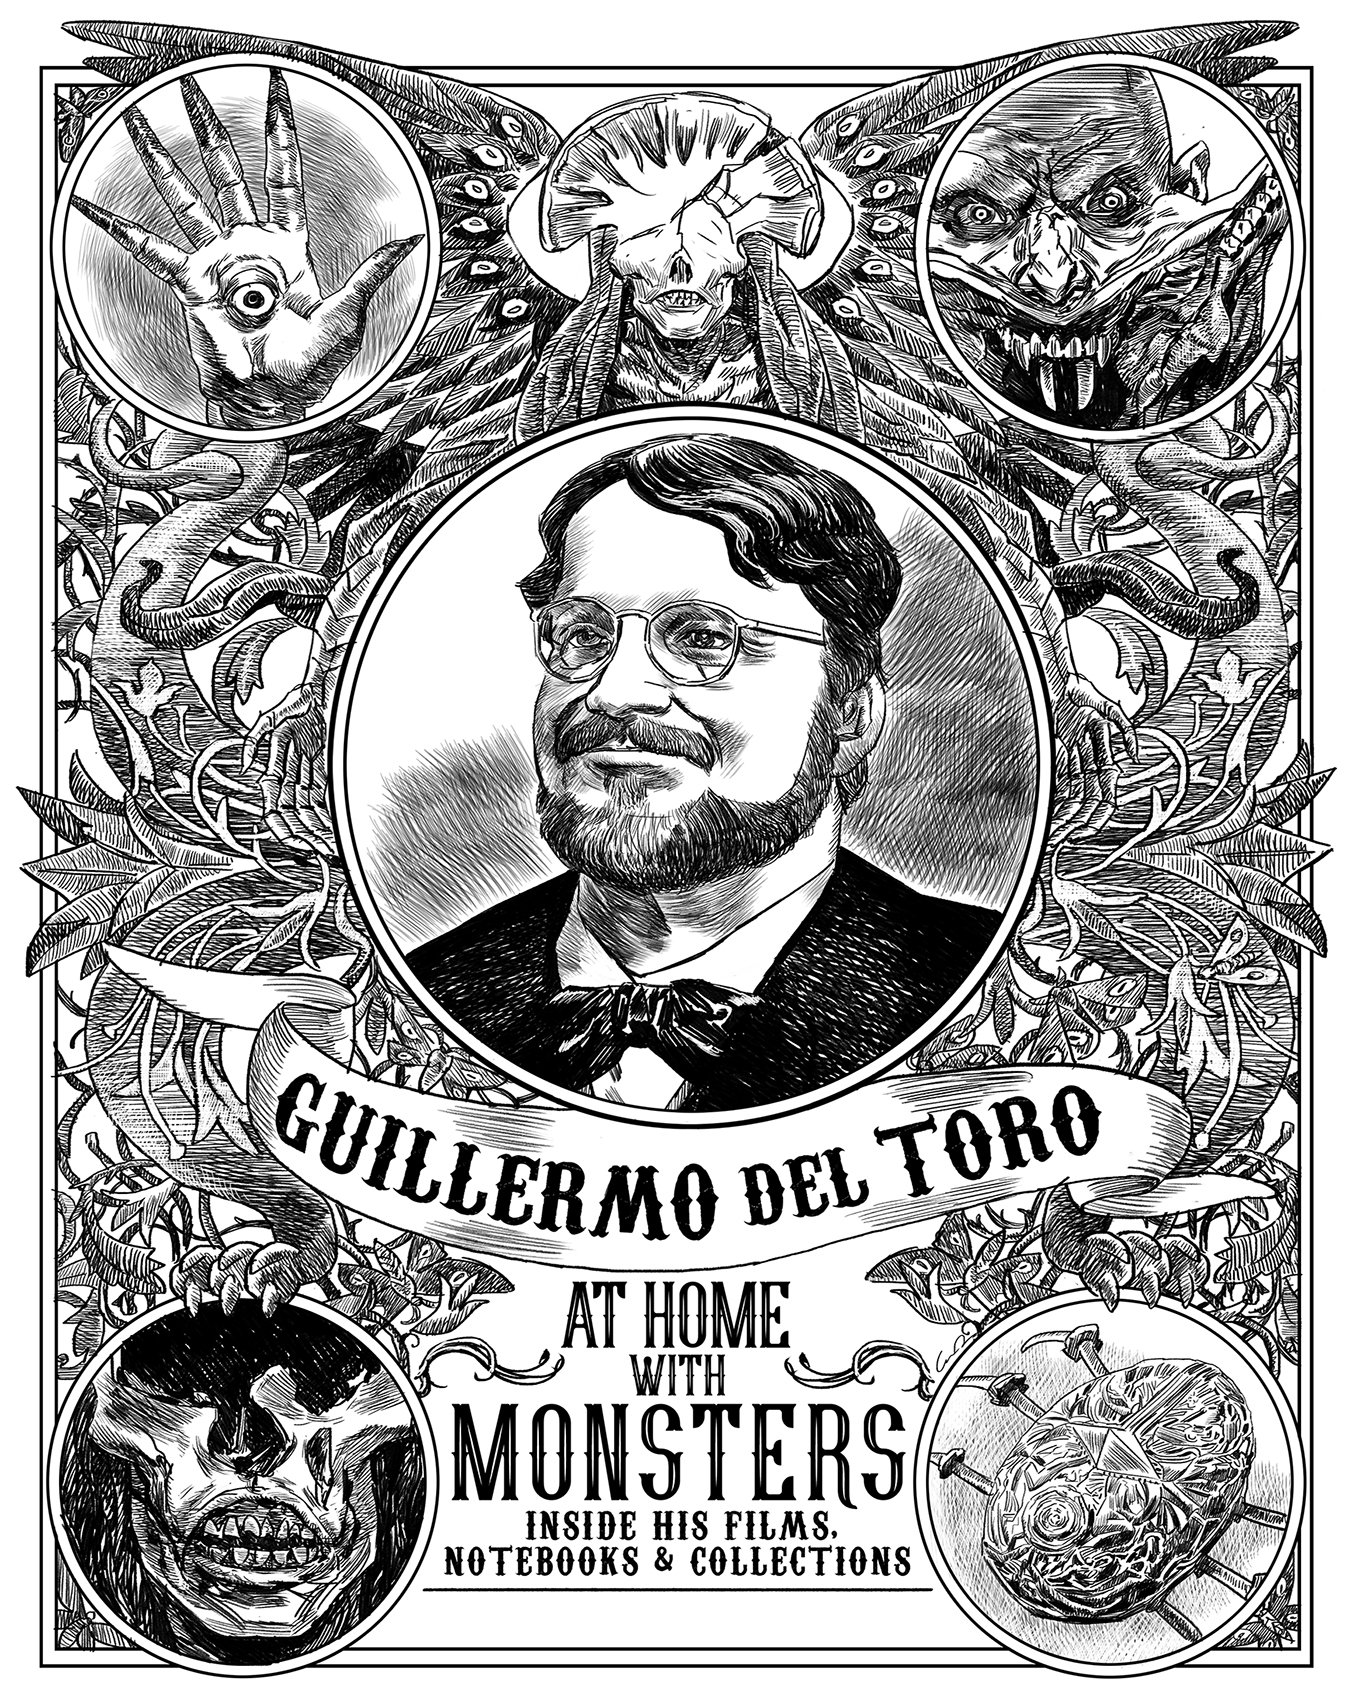 Happy 53rd Birthday to Guillermo del Toro!! ~ monstrous cheers to many more adventures ahead!